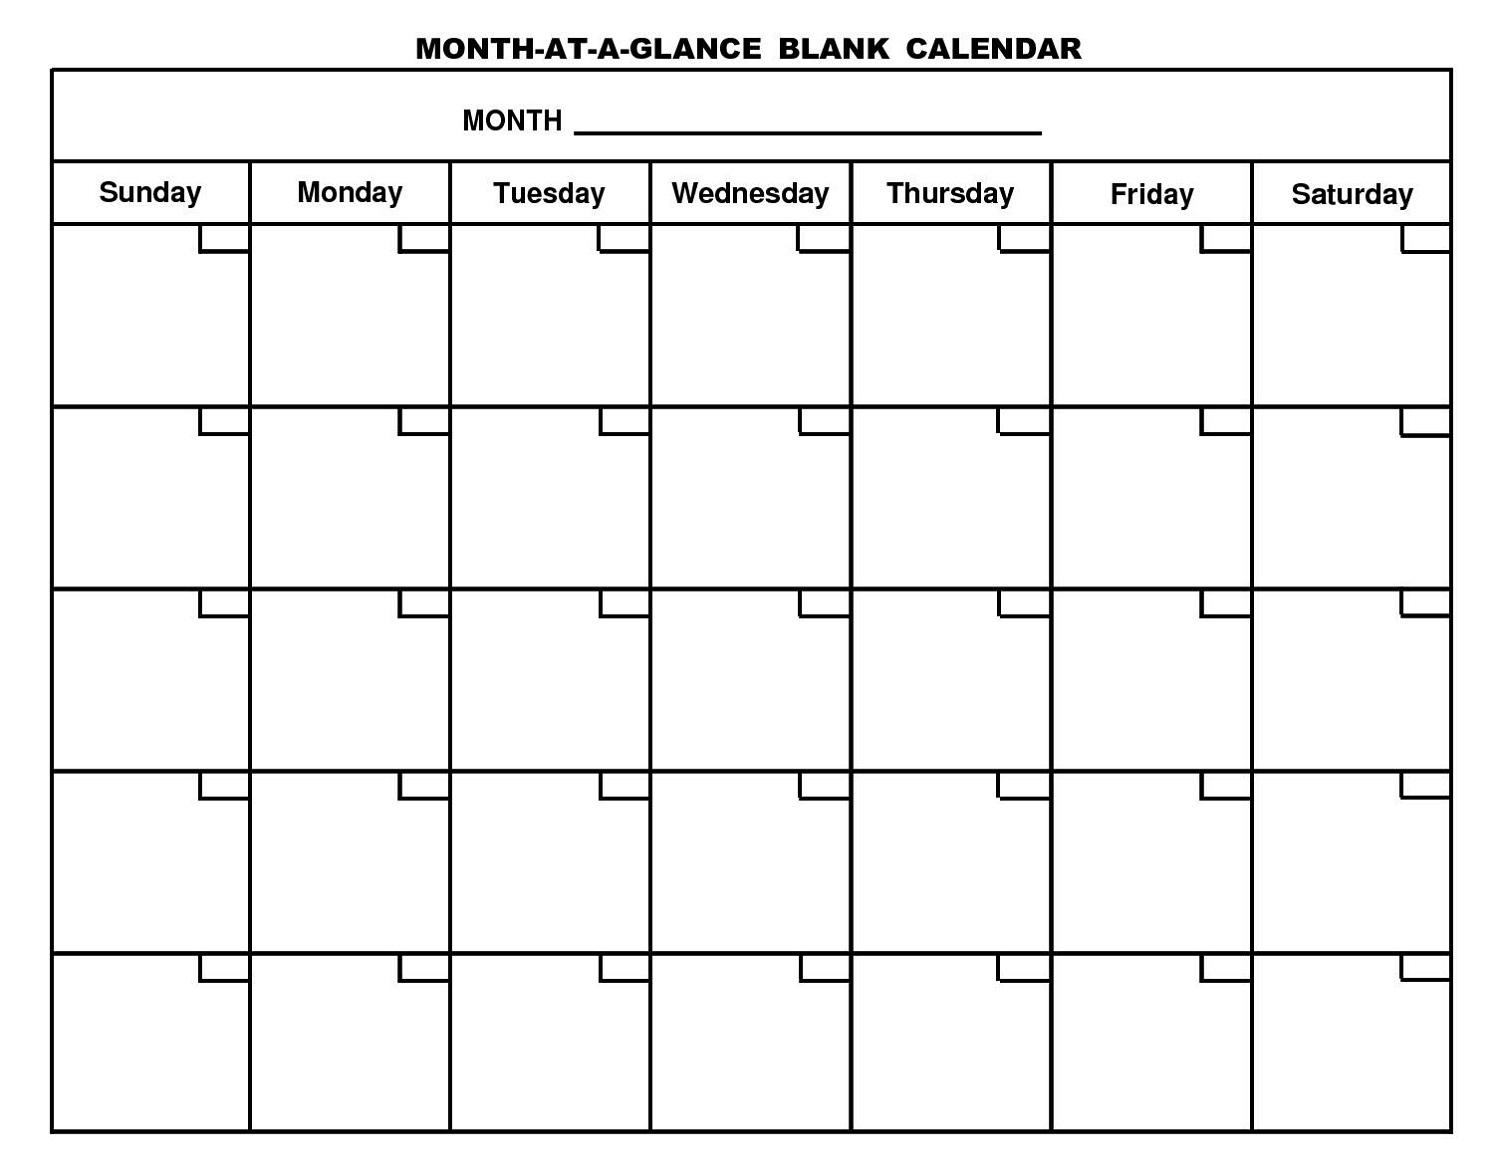 Month At A Glance Calendar Printable Blank Downloadable